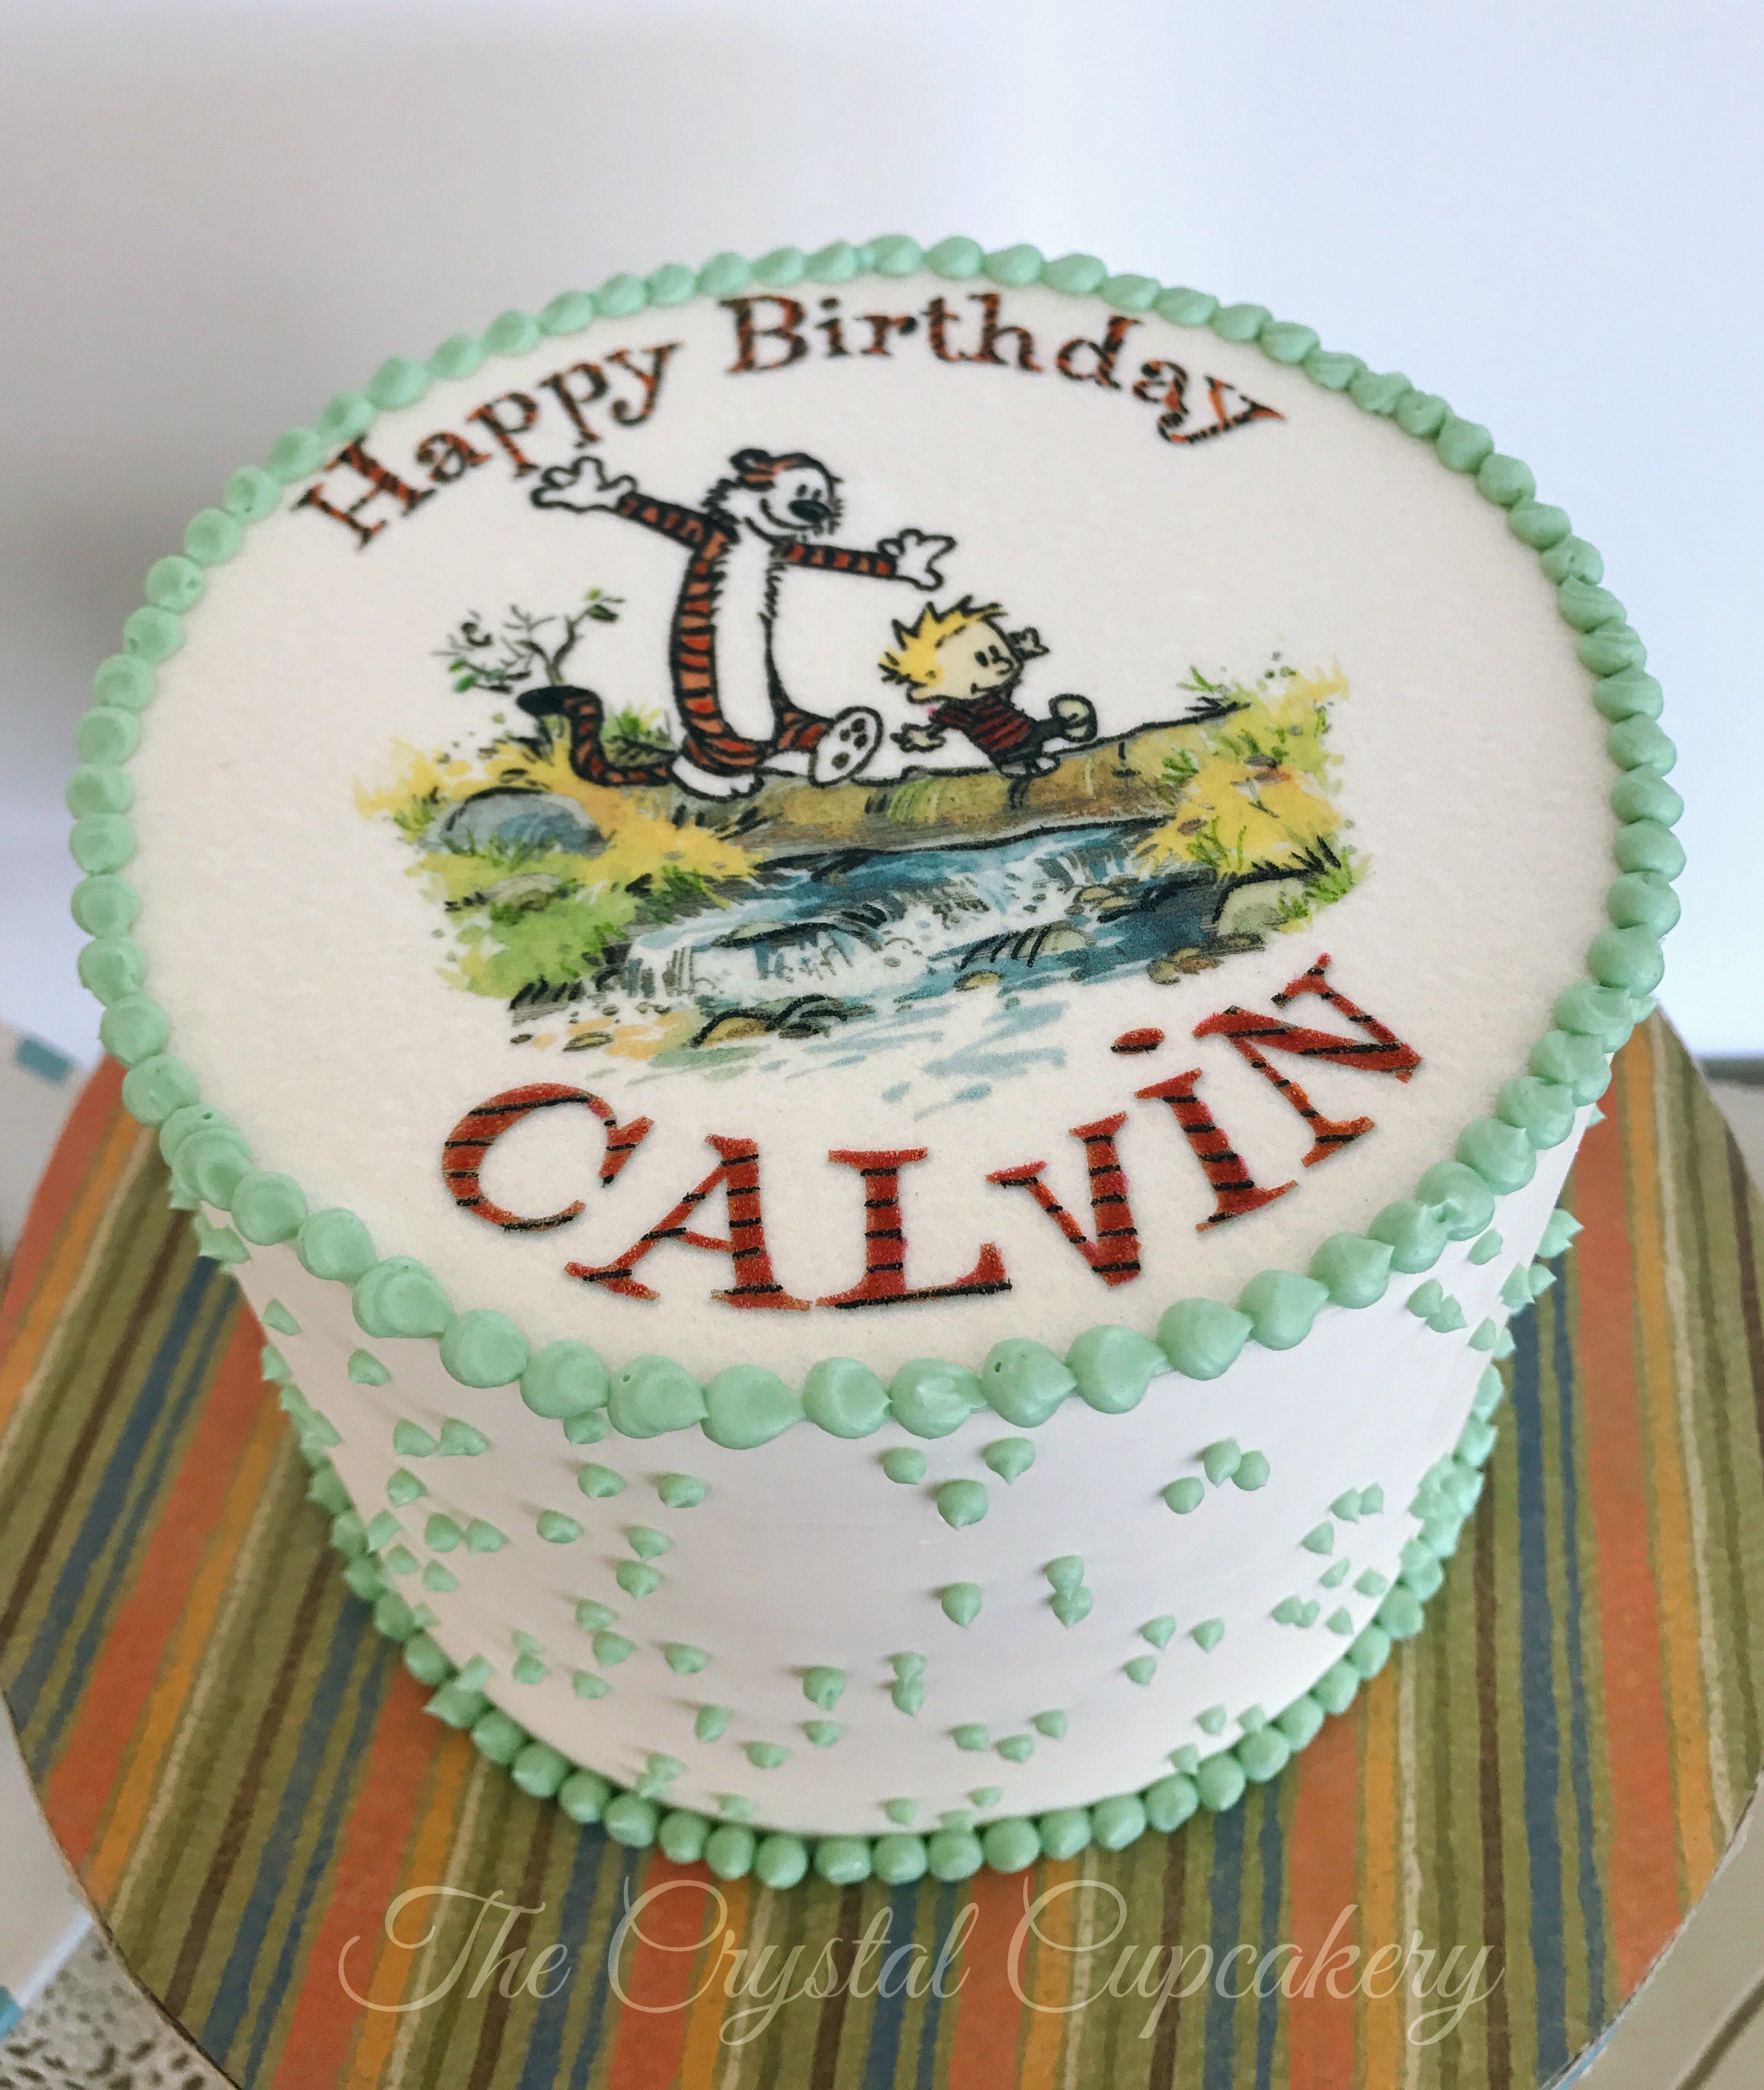 Calvin & Hobbes Birthday